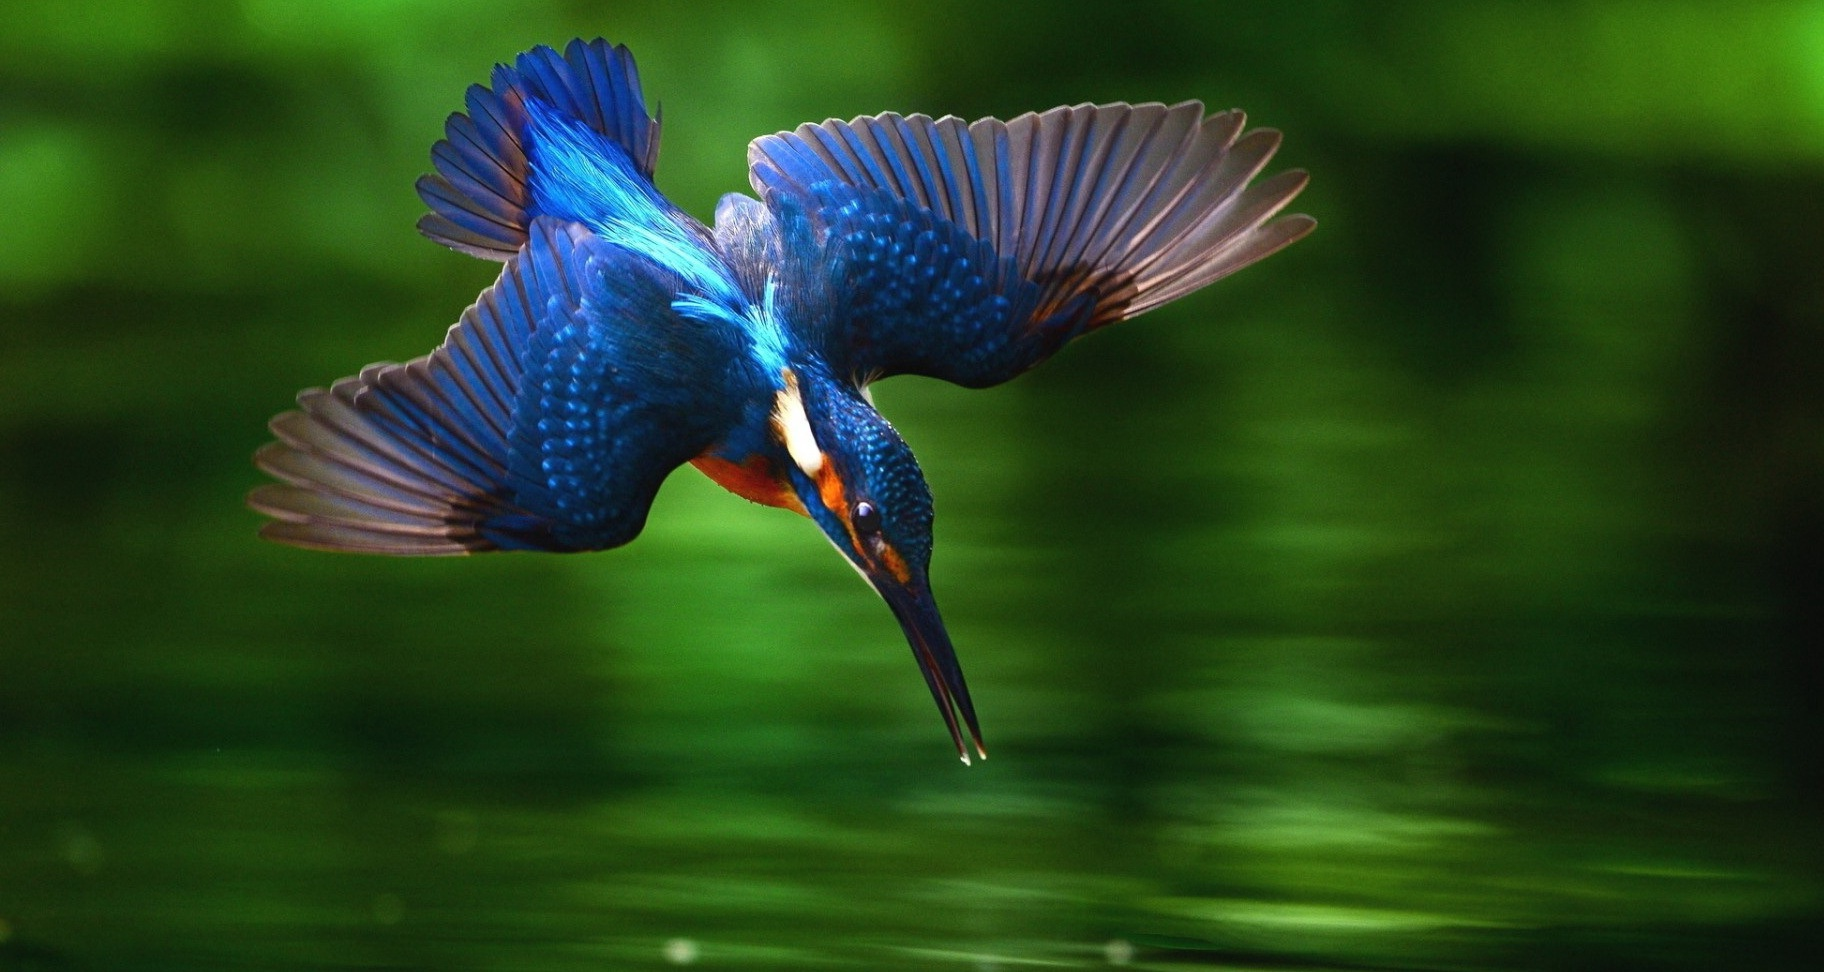 These Kingfisher Bird Diving Into Water 1428756 Hd Wallpaper Backgrounds Download